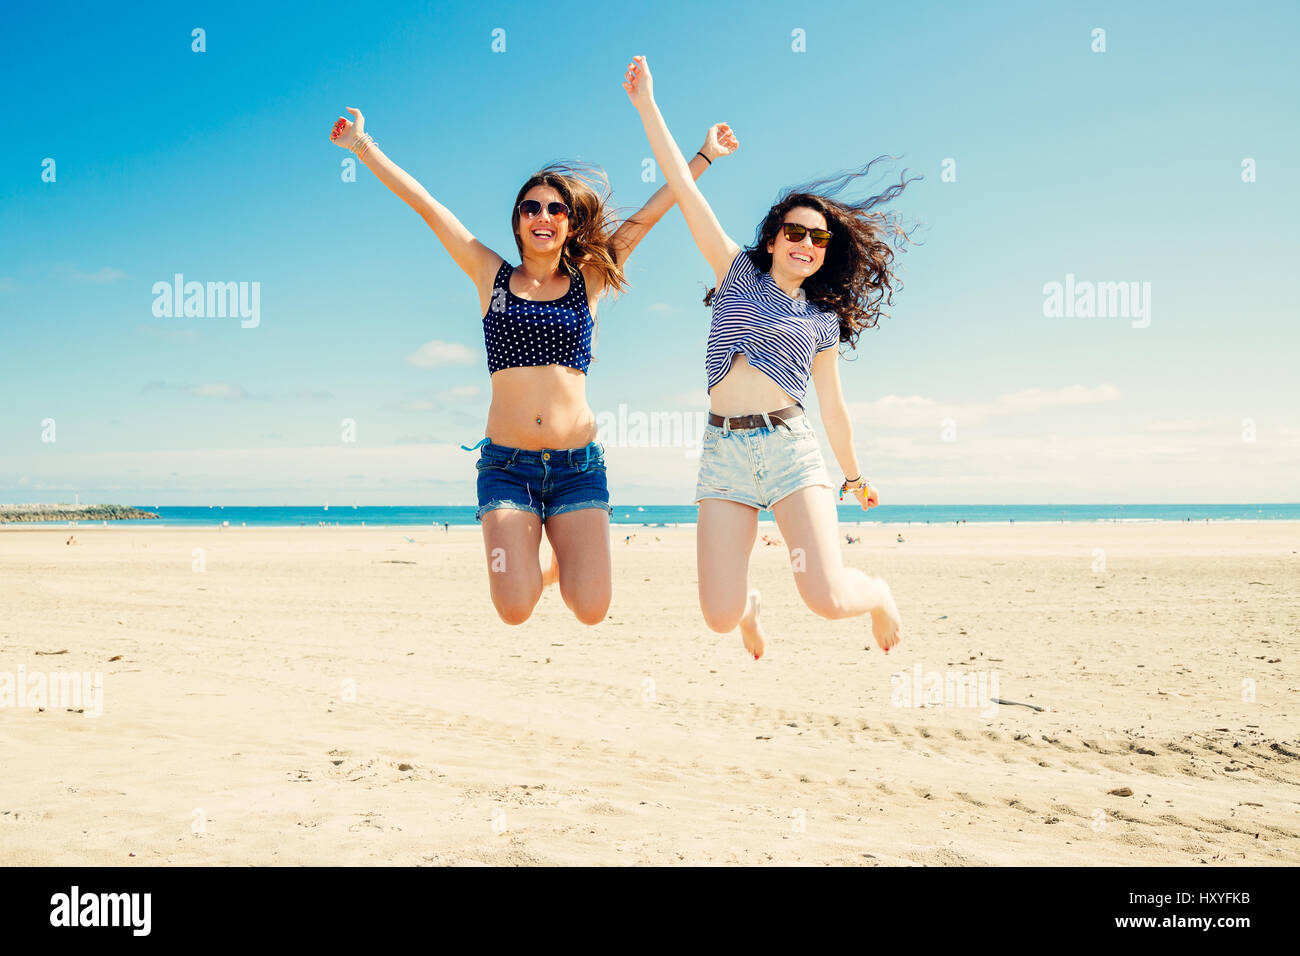 Happy and funny girl friends jumping on the beach, Some blur on legs beacuse of movement - Stock Image